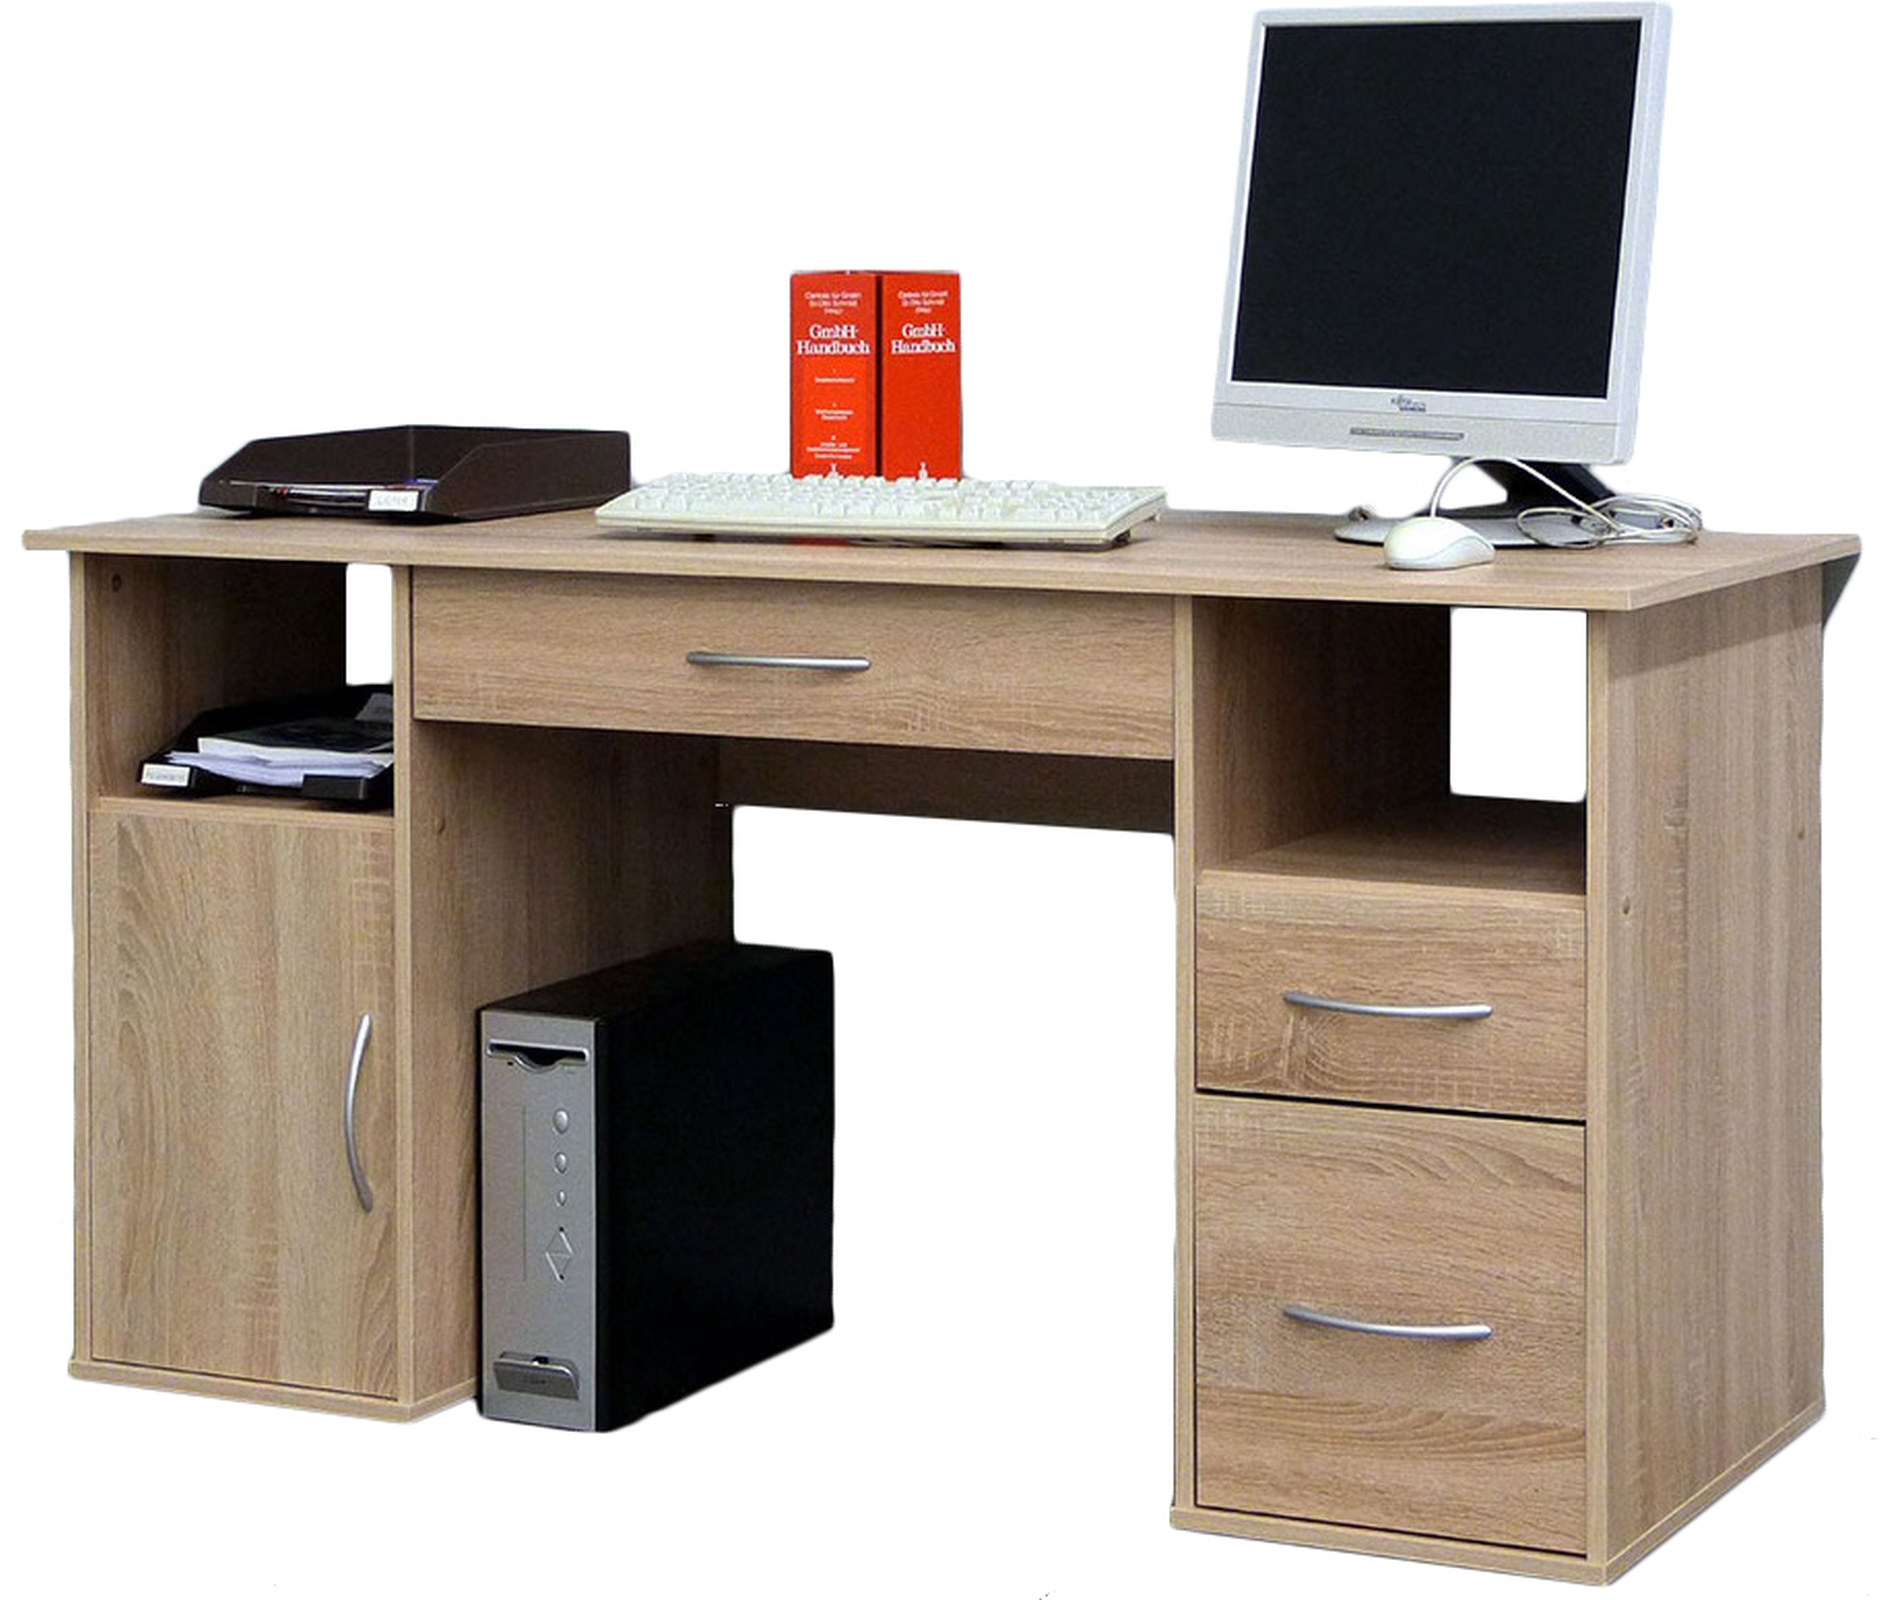 vcm gruppe schreibtisch tisch computertisch laptop pc fach schubladen sonoma eiche s gerau. Black Bedroom Furniture Sets. Home Design Ideas